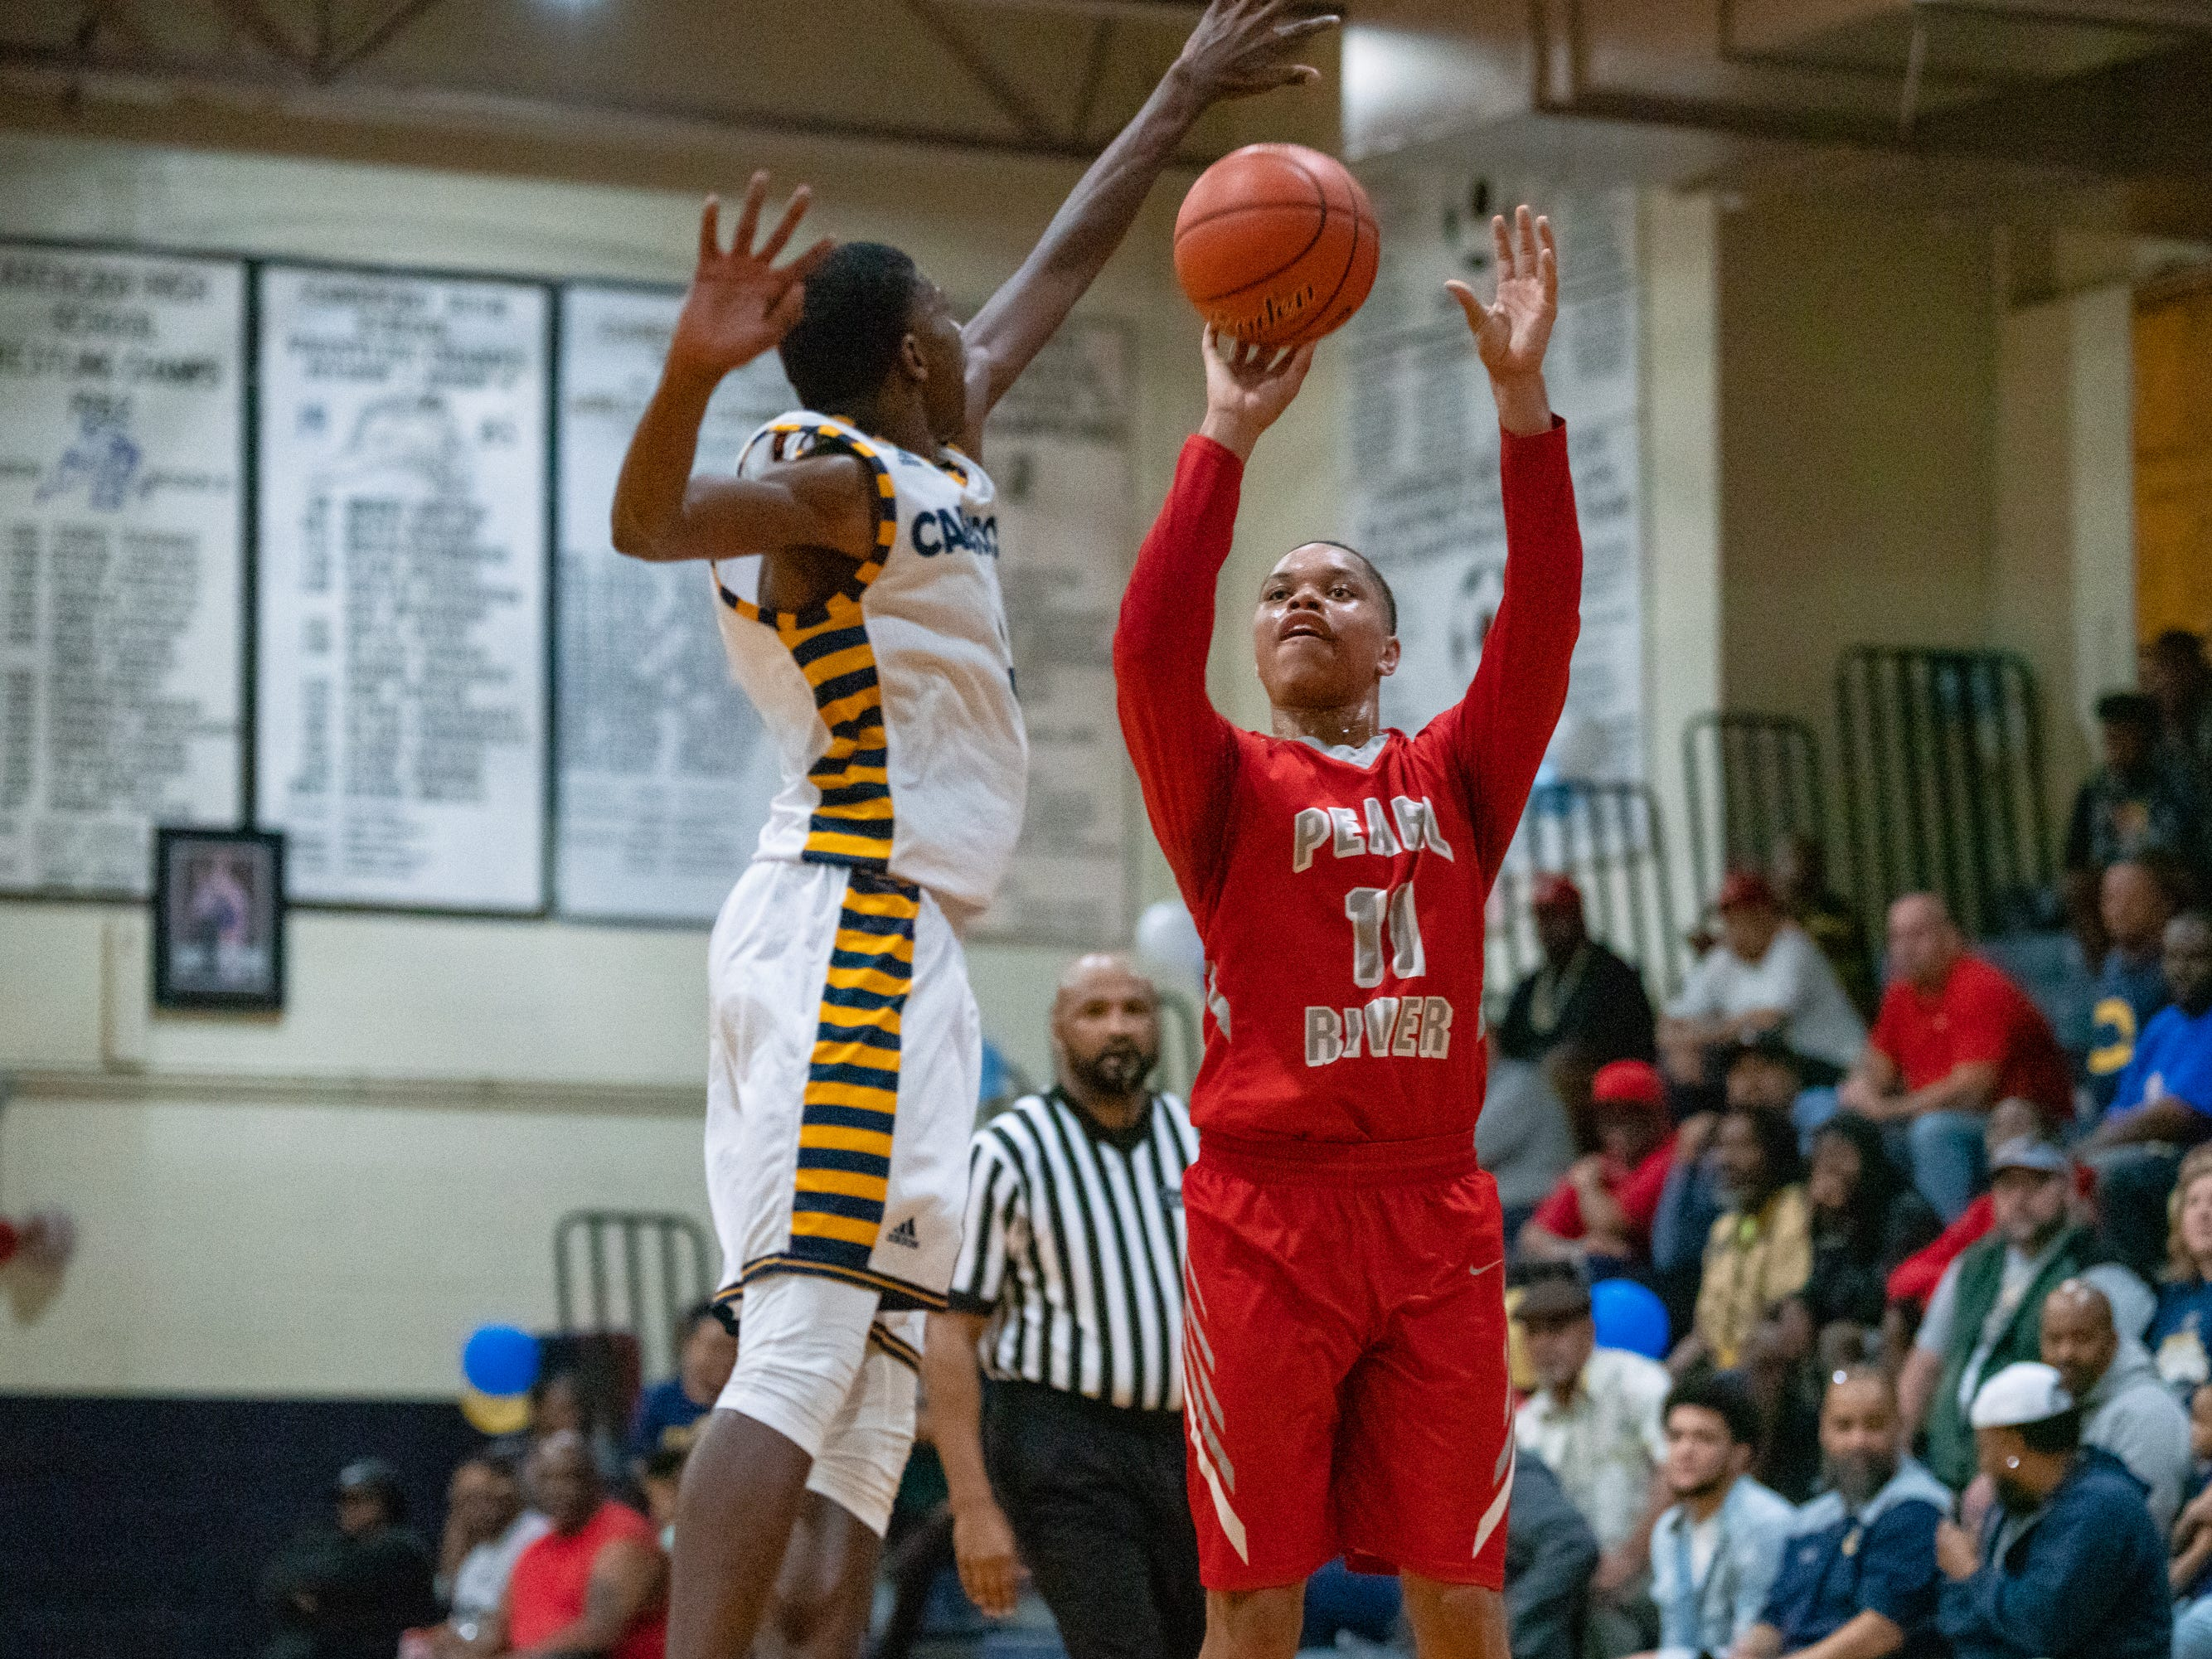 The Carencro High Bears take on the Pearl River Rebels at home on Friday, Feb. 22, 2019.